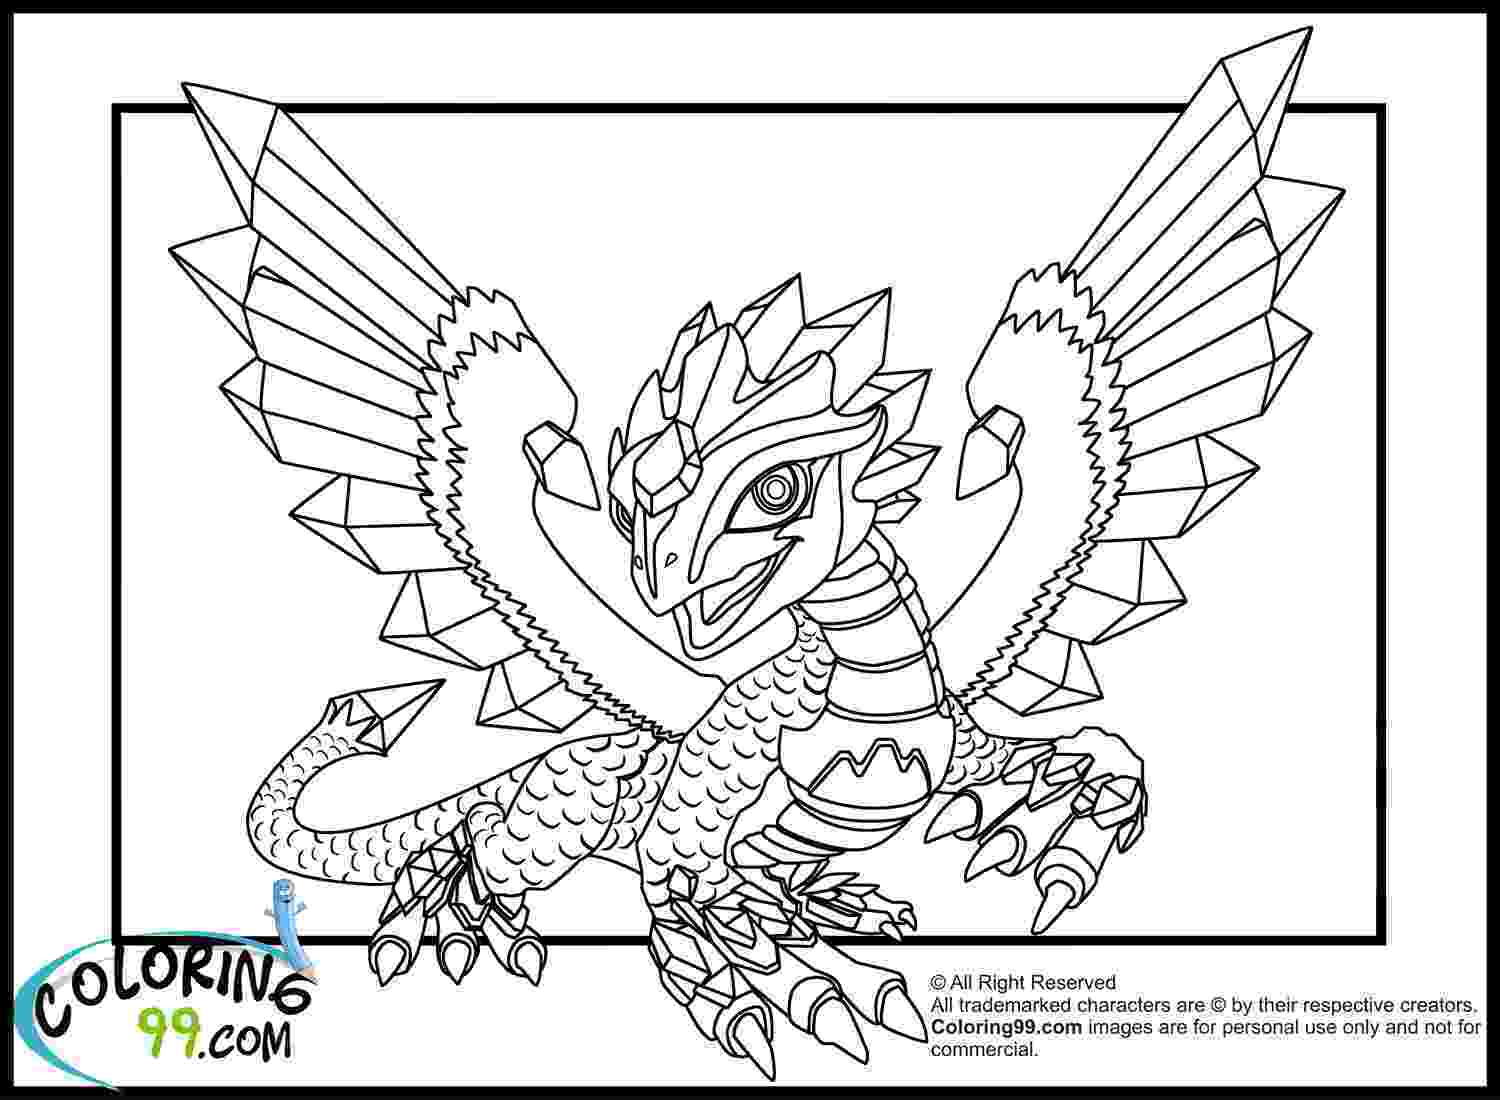 colouring pages welsh dragon heraldic dragon coloring page free printable coloring pages colouring dragon pages welsh